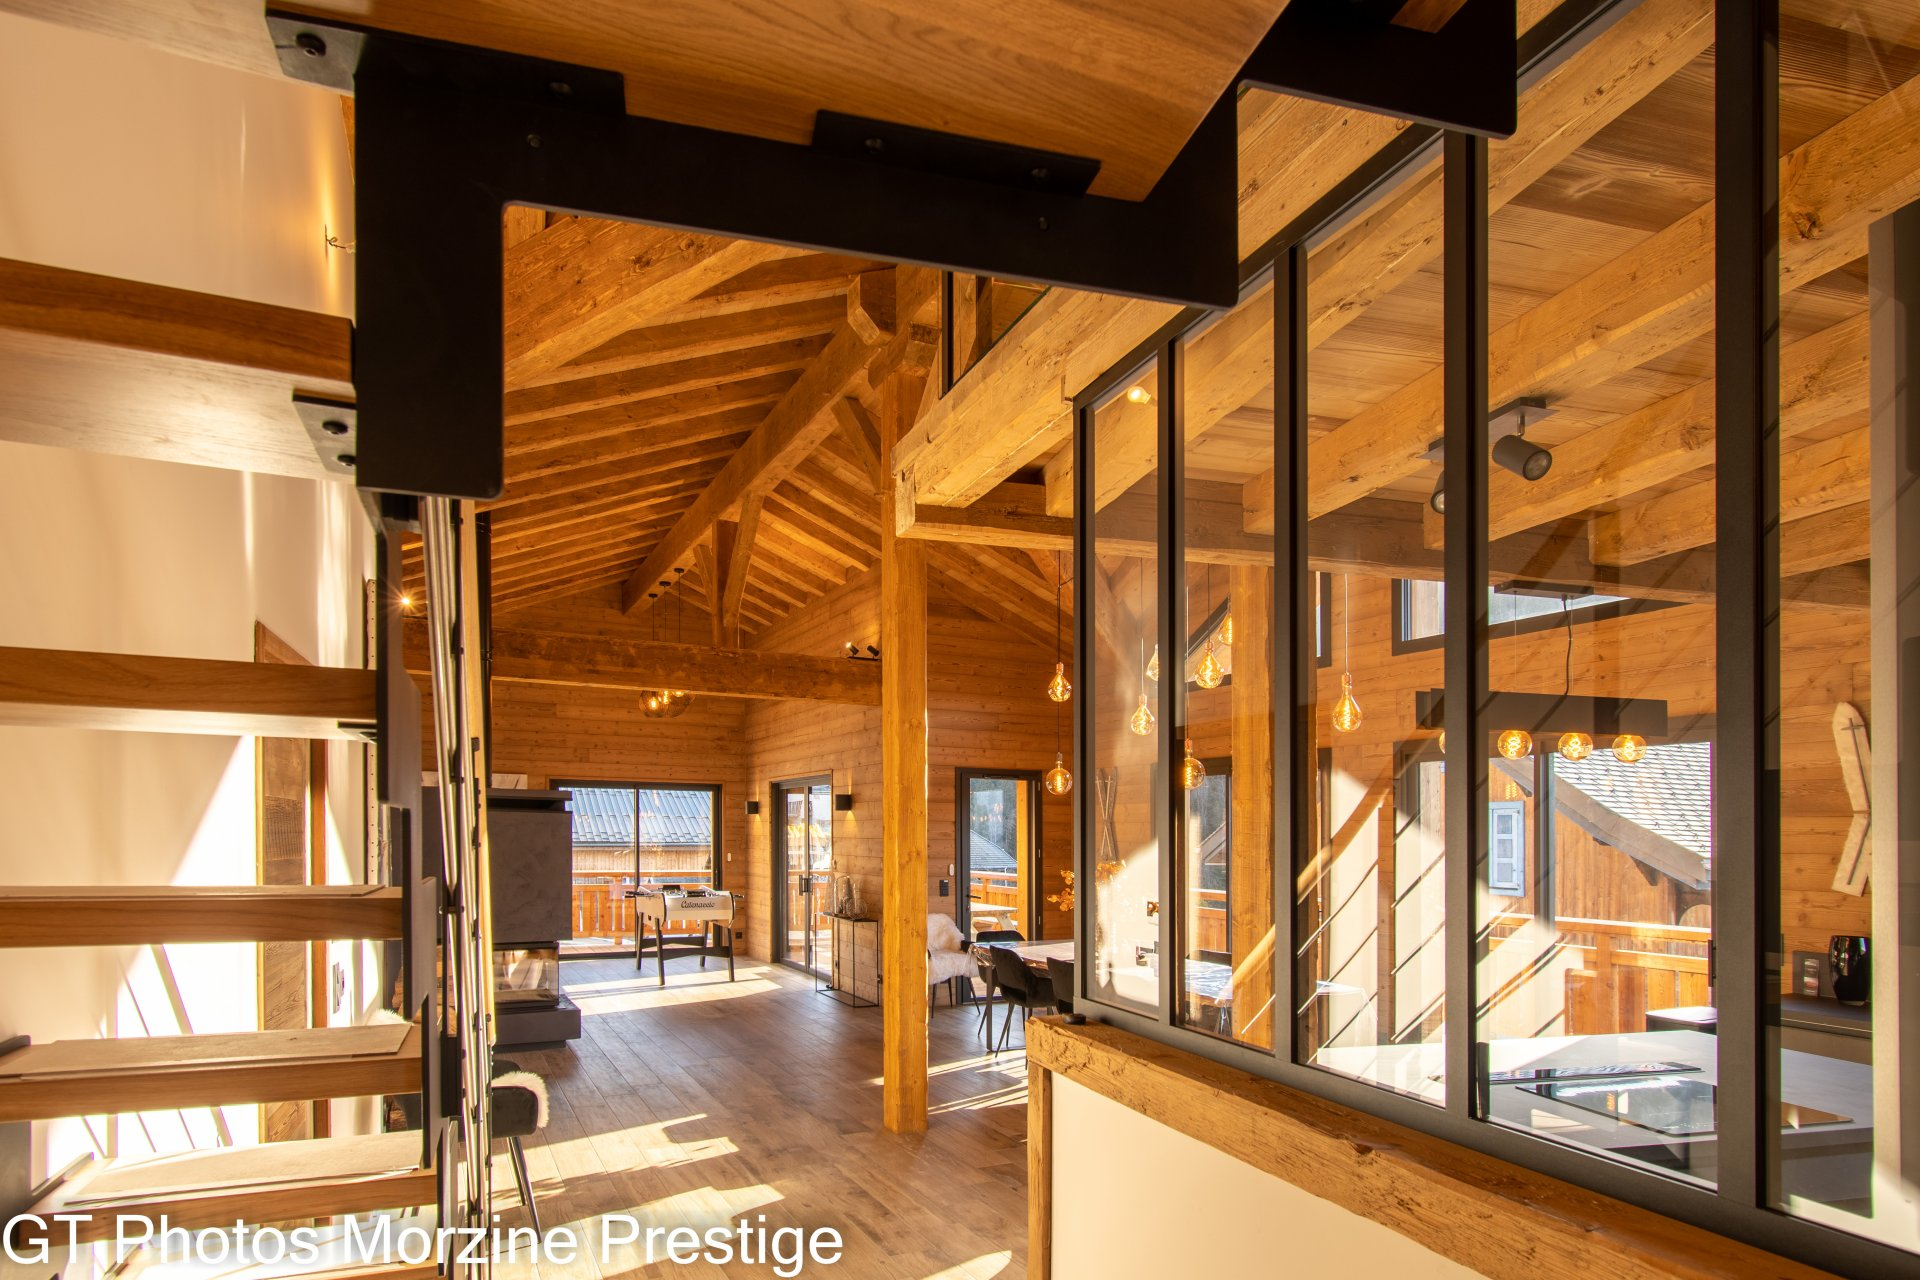 Chalet LE CREPET Accommodation in Morzine